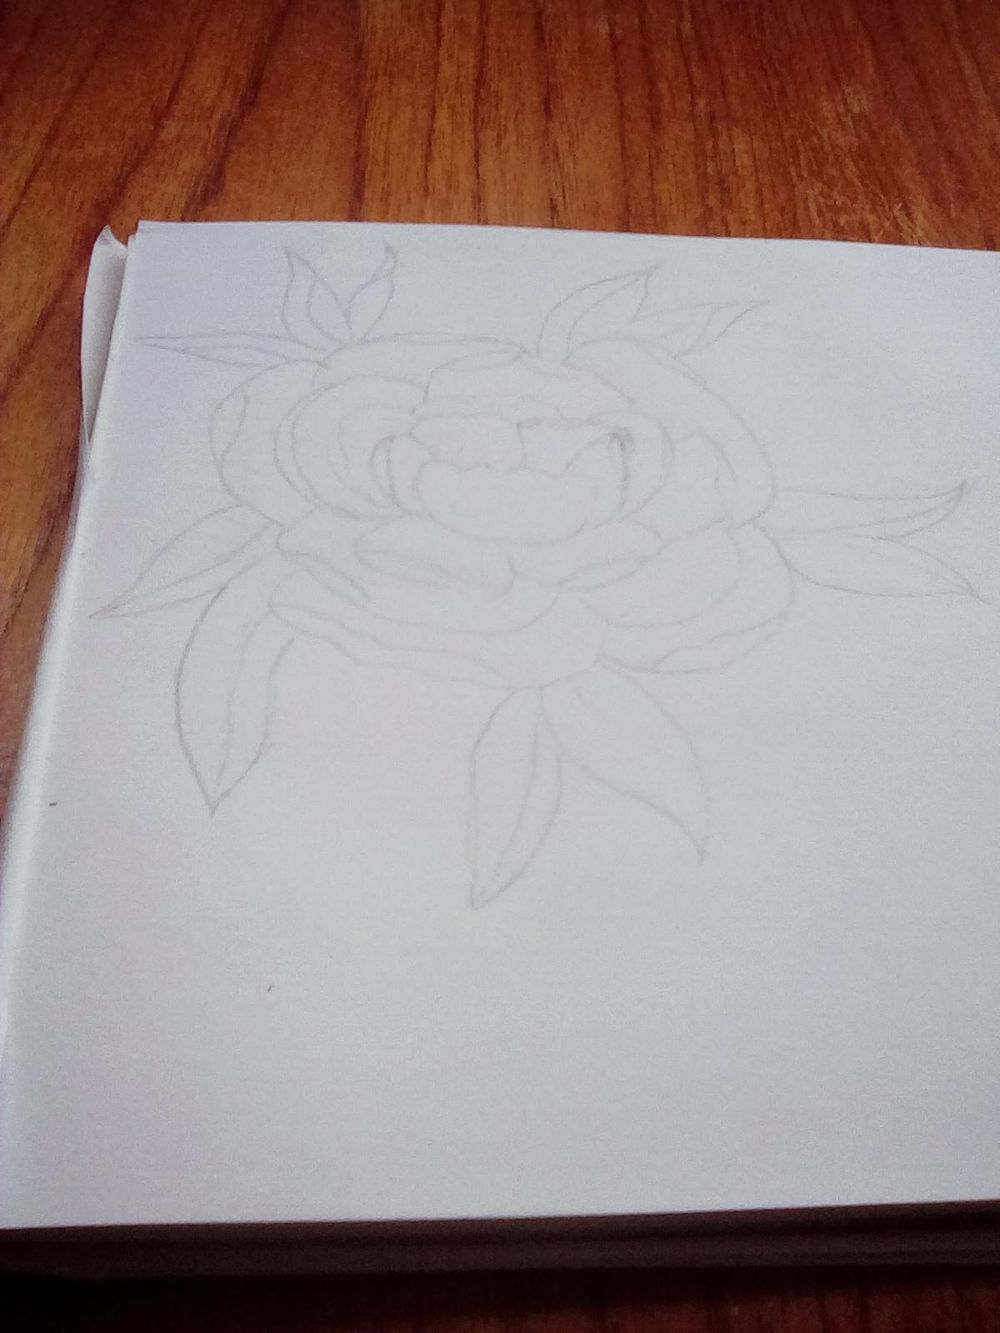 Line drawing peony - image 1 - student project